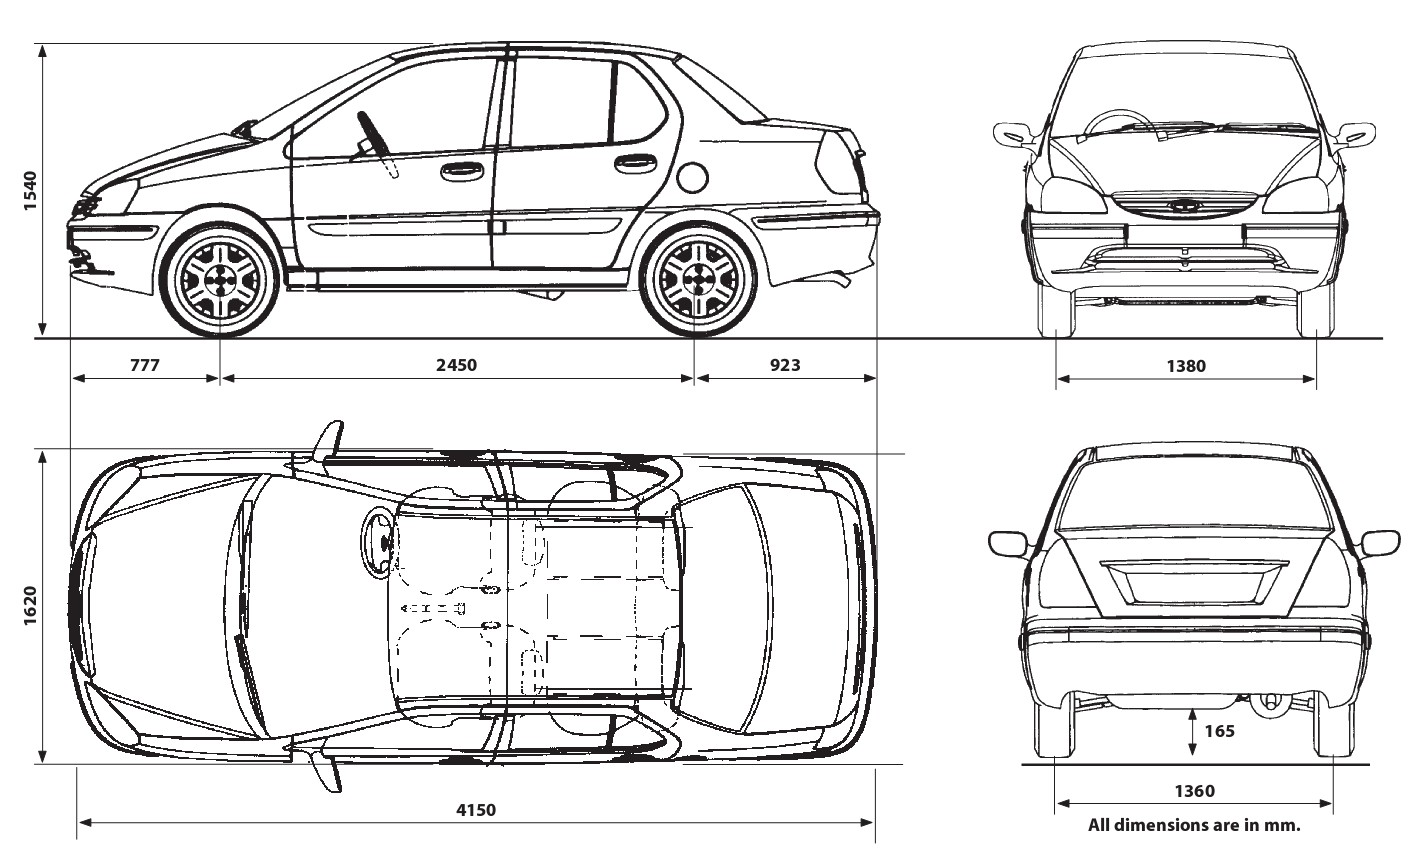 E90 330i Fuse Box Location. Diagram. Auto Wiring Diagram